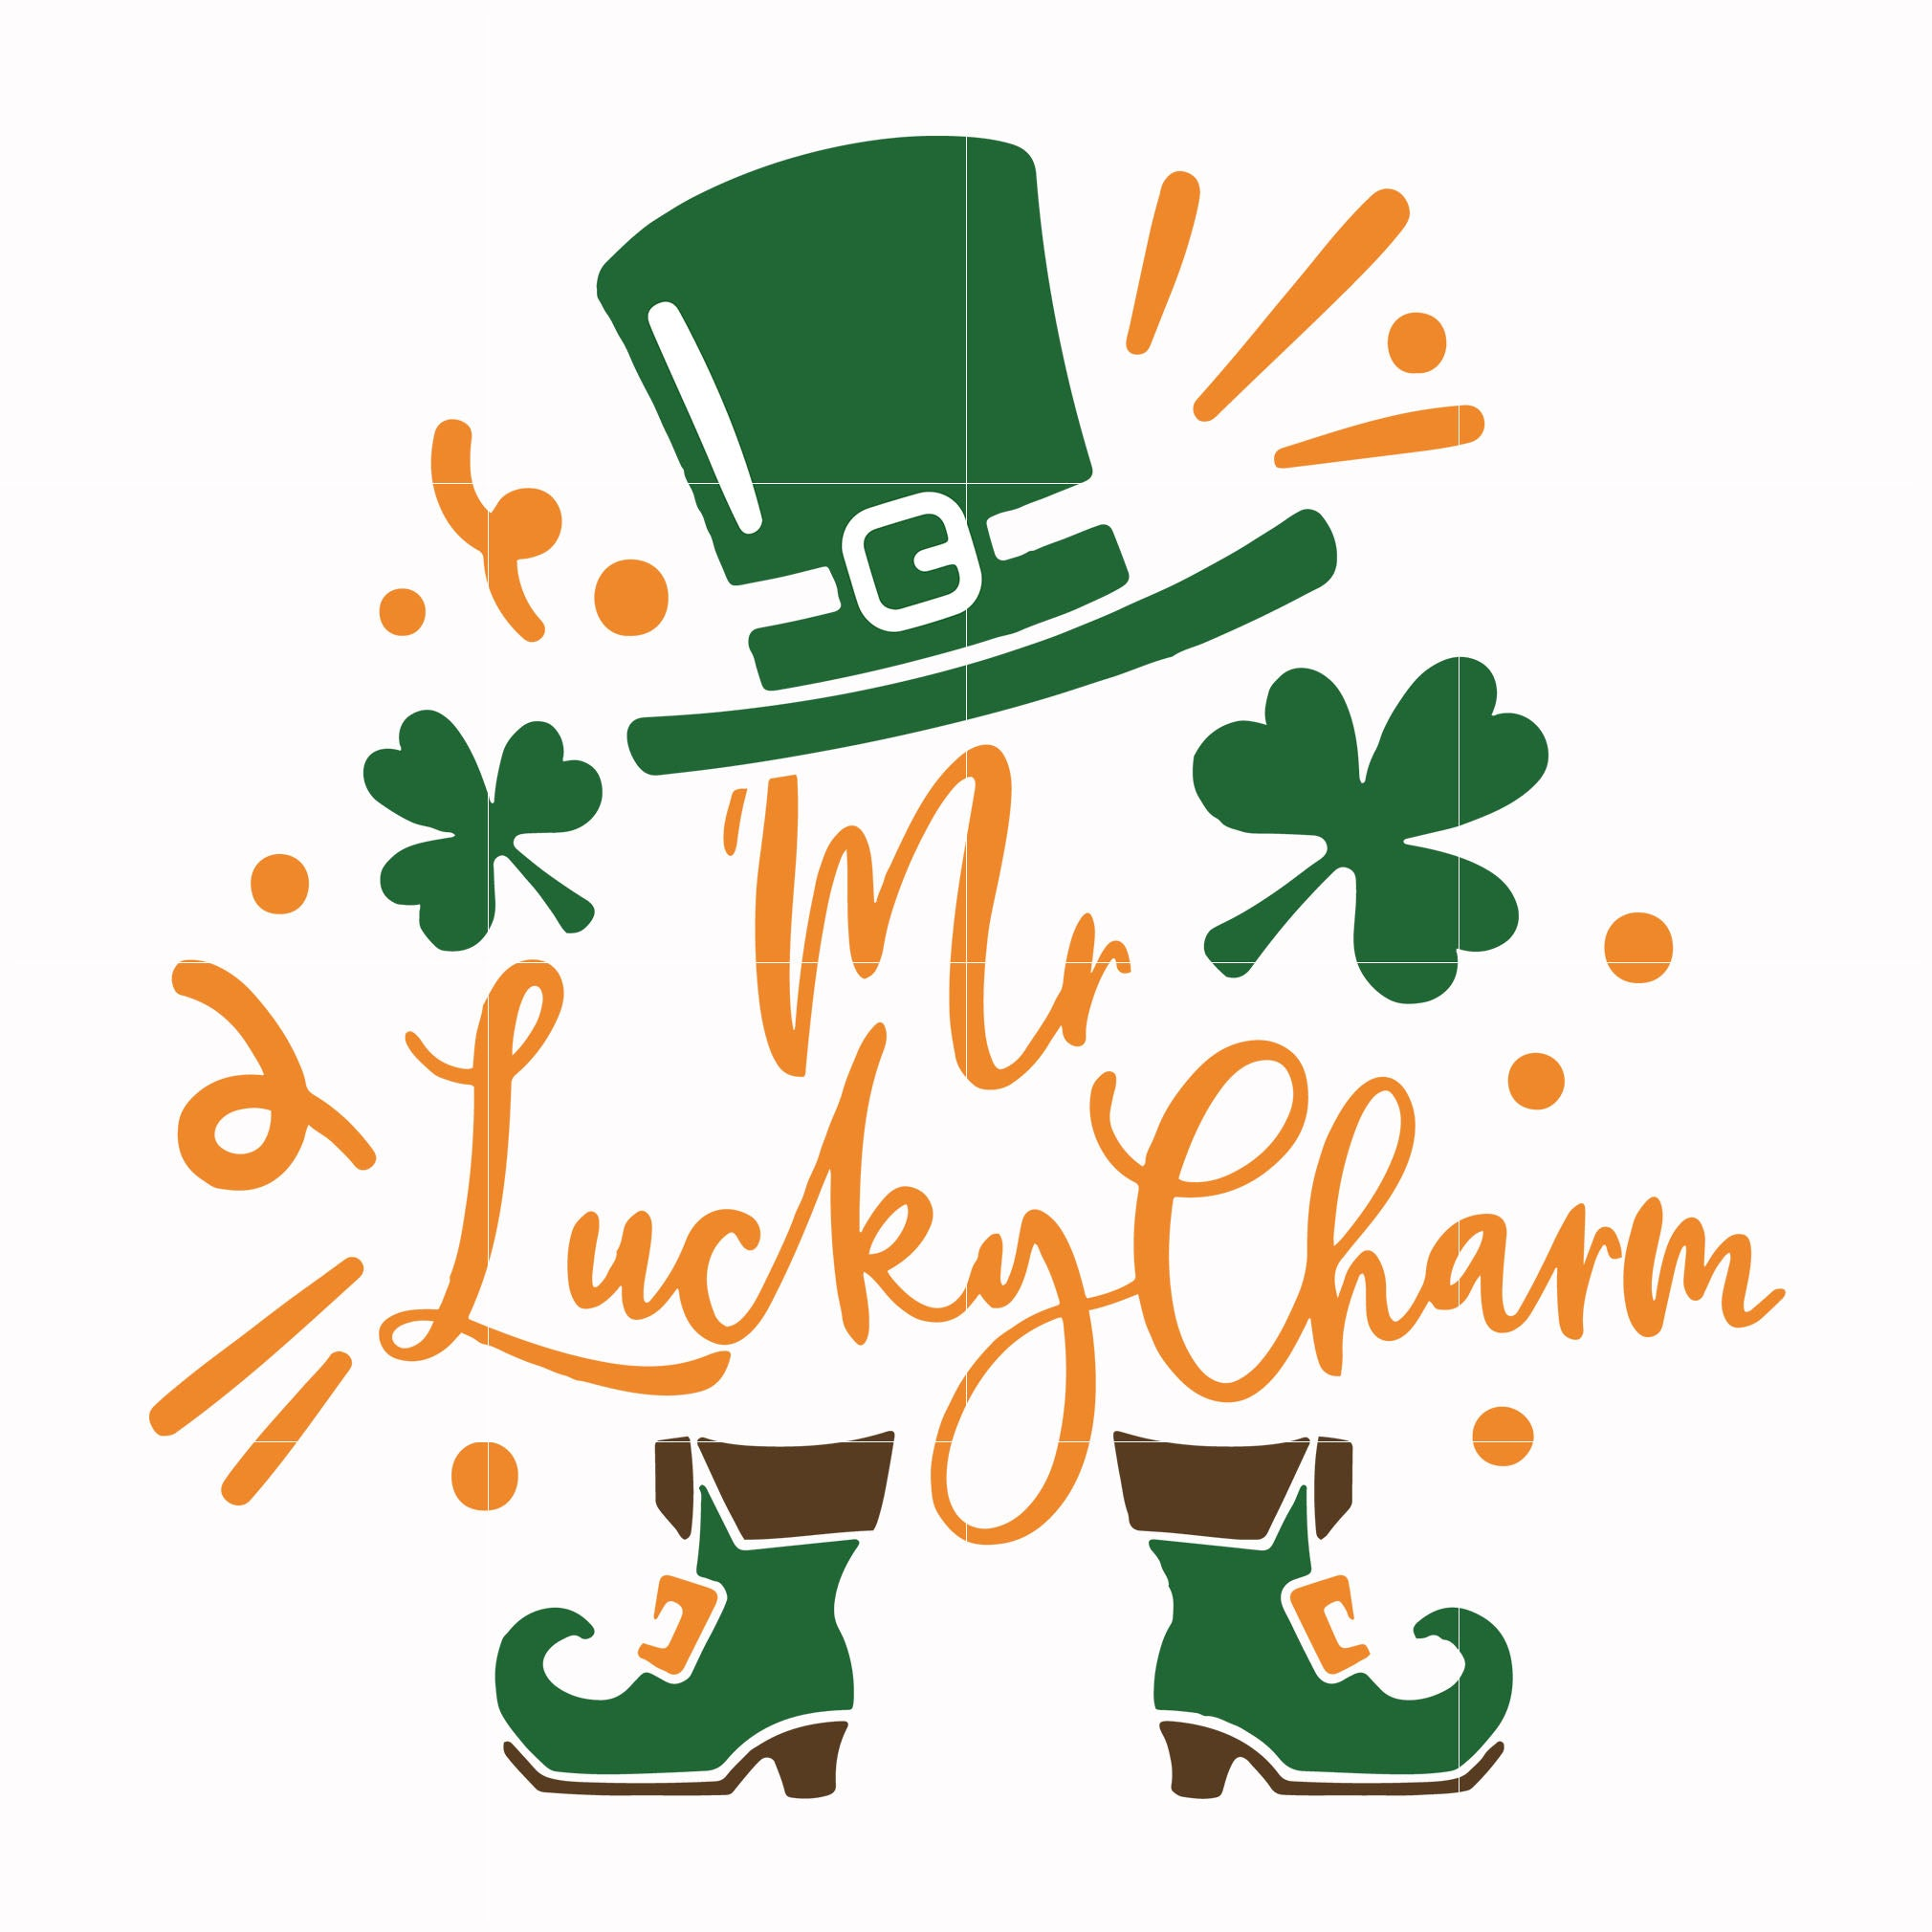 Mr lucky charm svg, shamrock svg, st patrick day svg, leprechaun svg, patrick svg, leprechaun svg, dxf, eps, png digital file